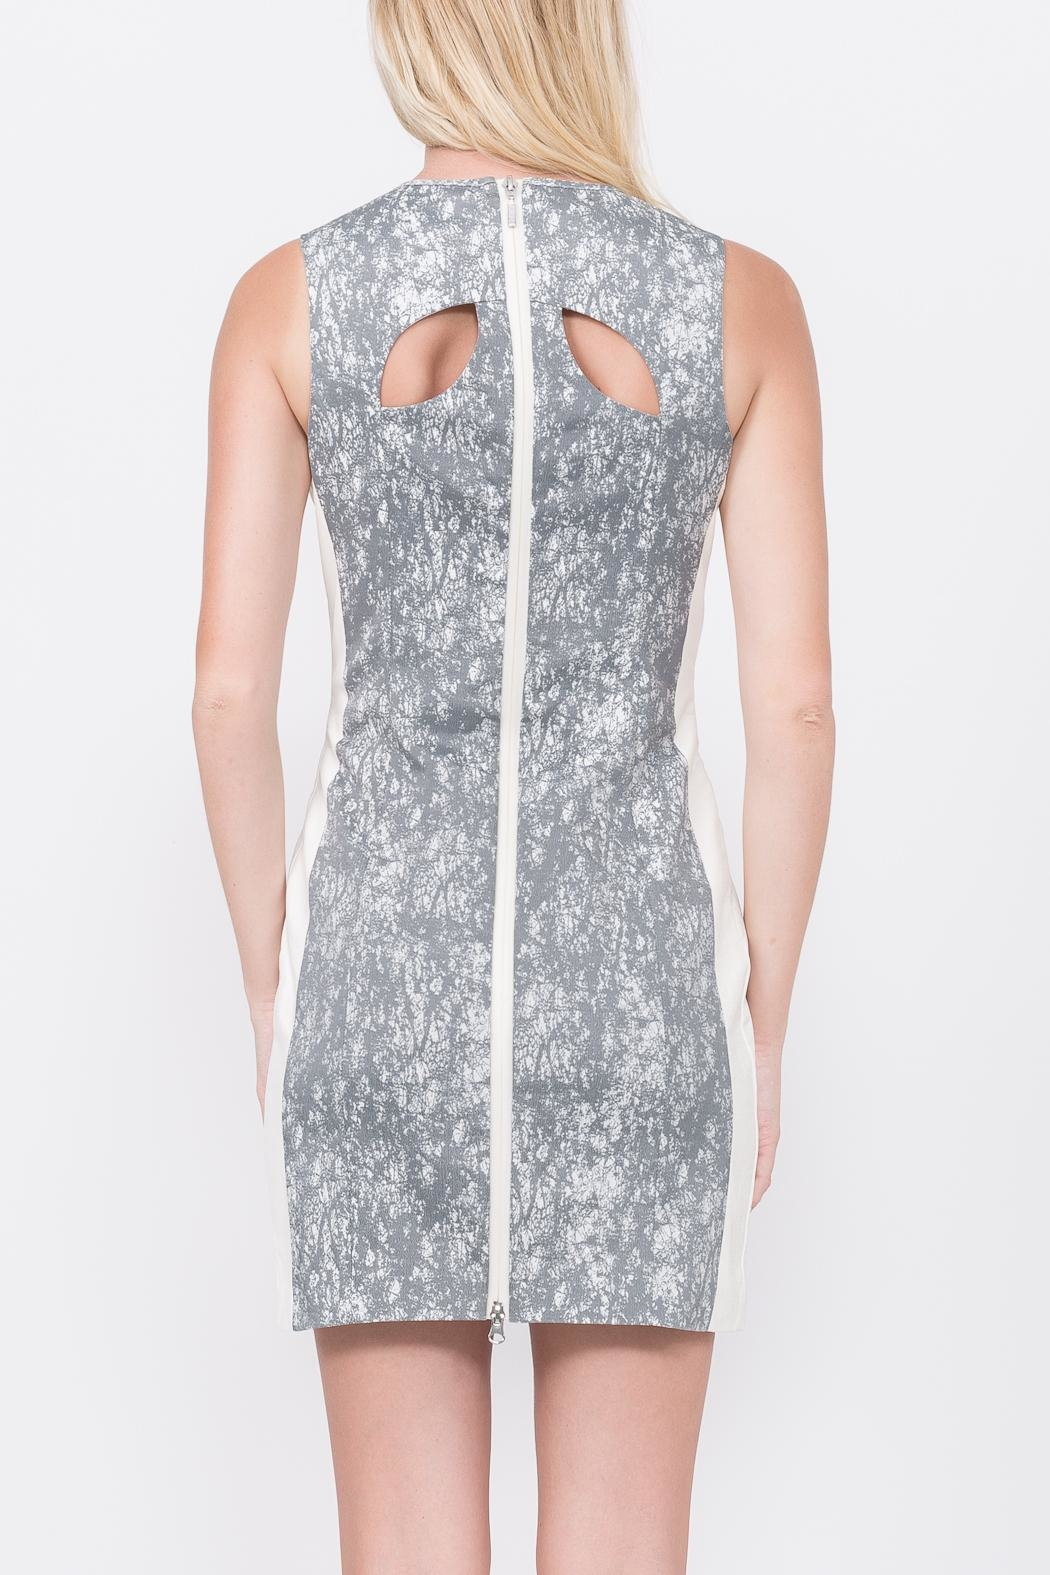 QUINN Calypso Paneled Dress - Side Cropped Image